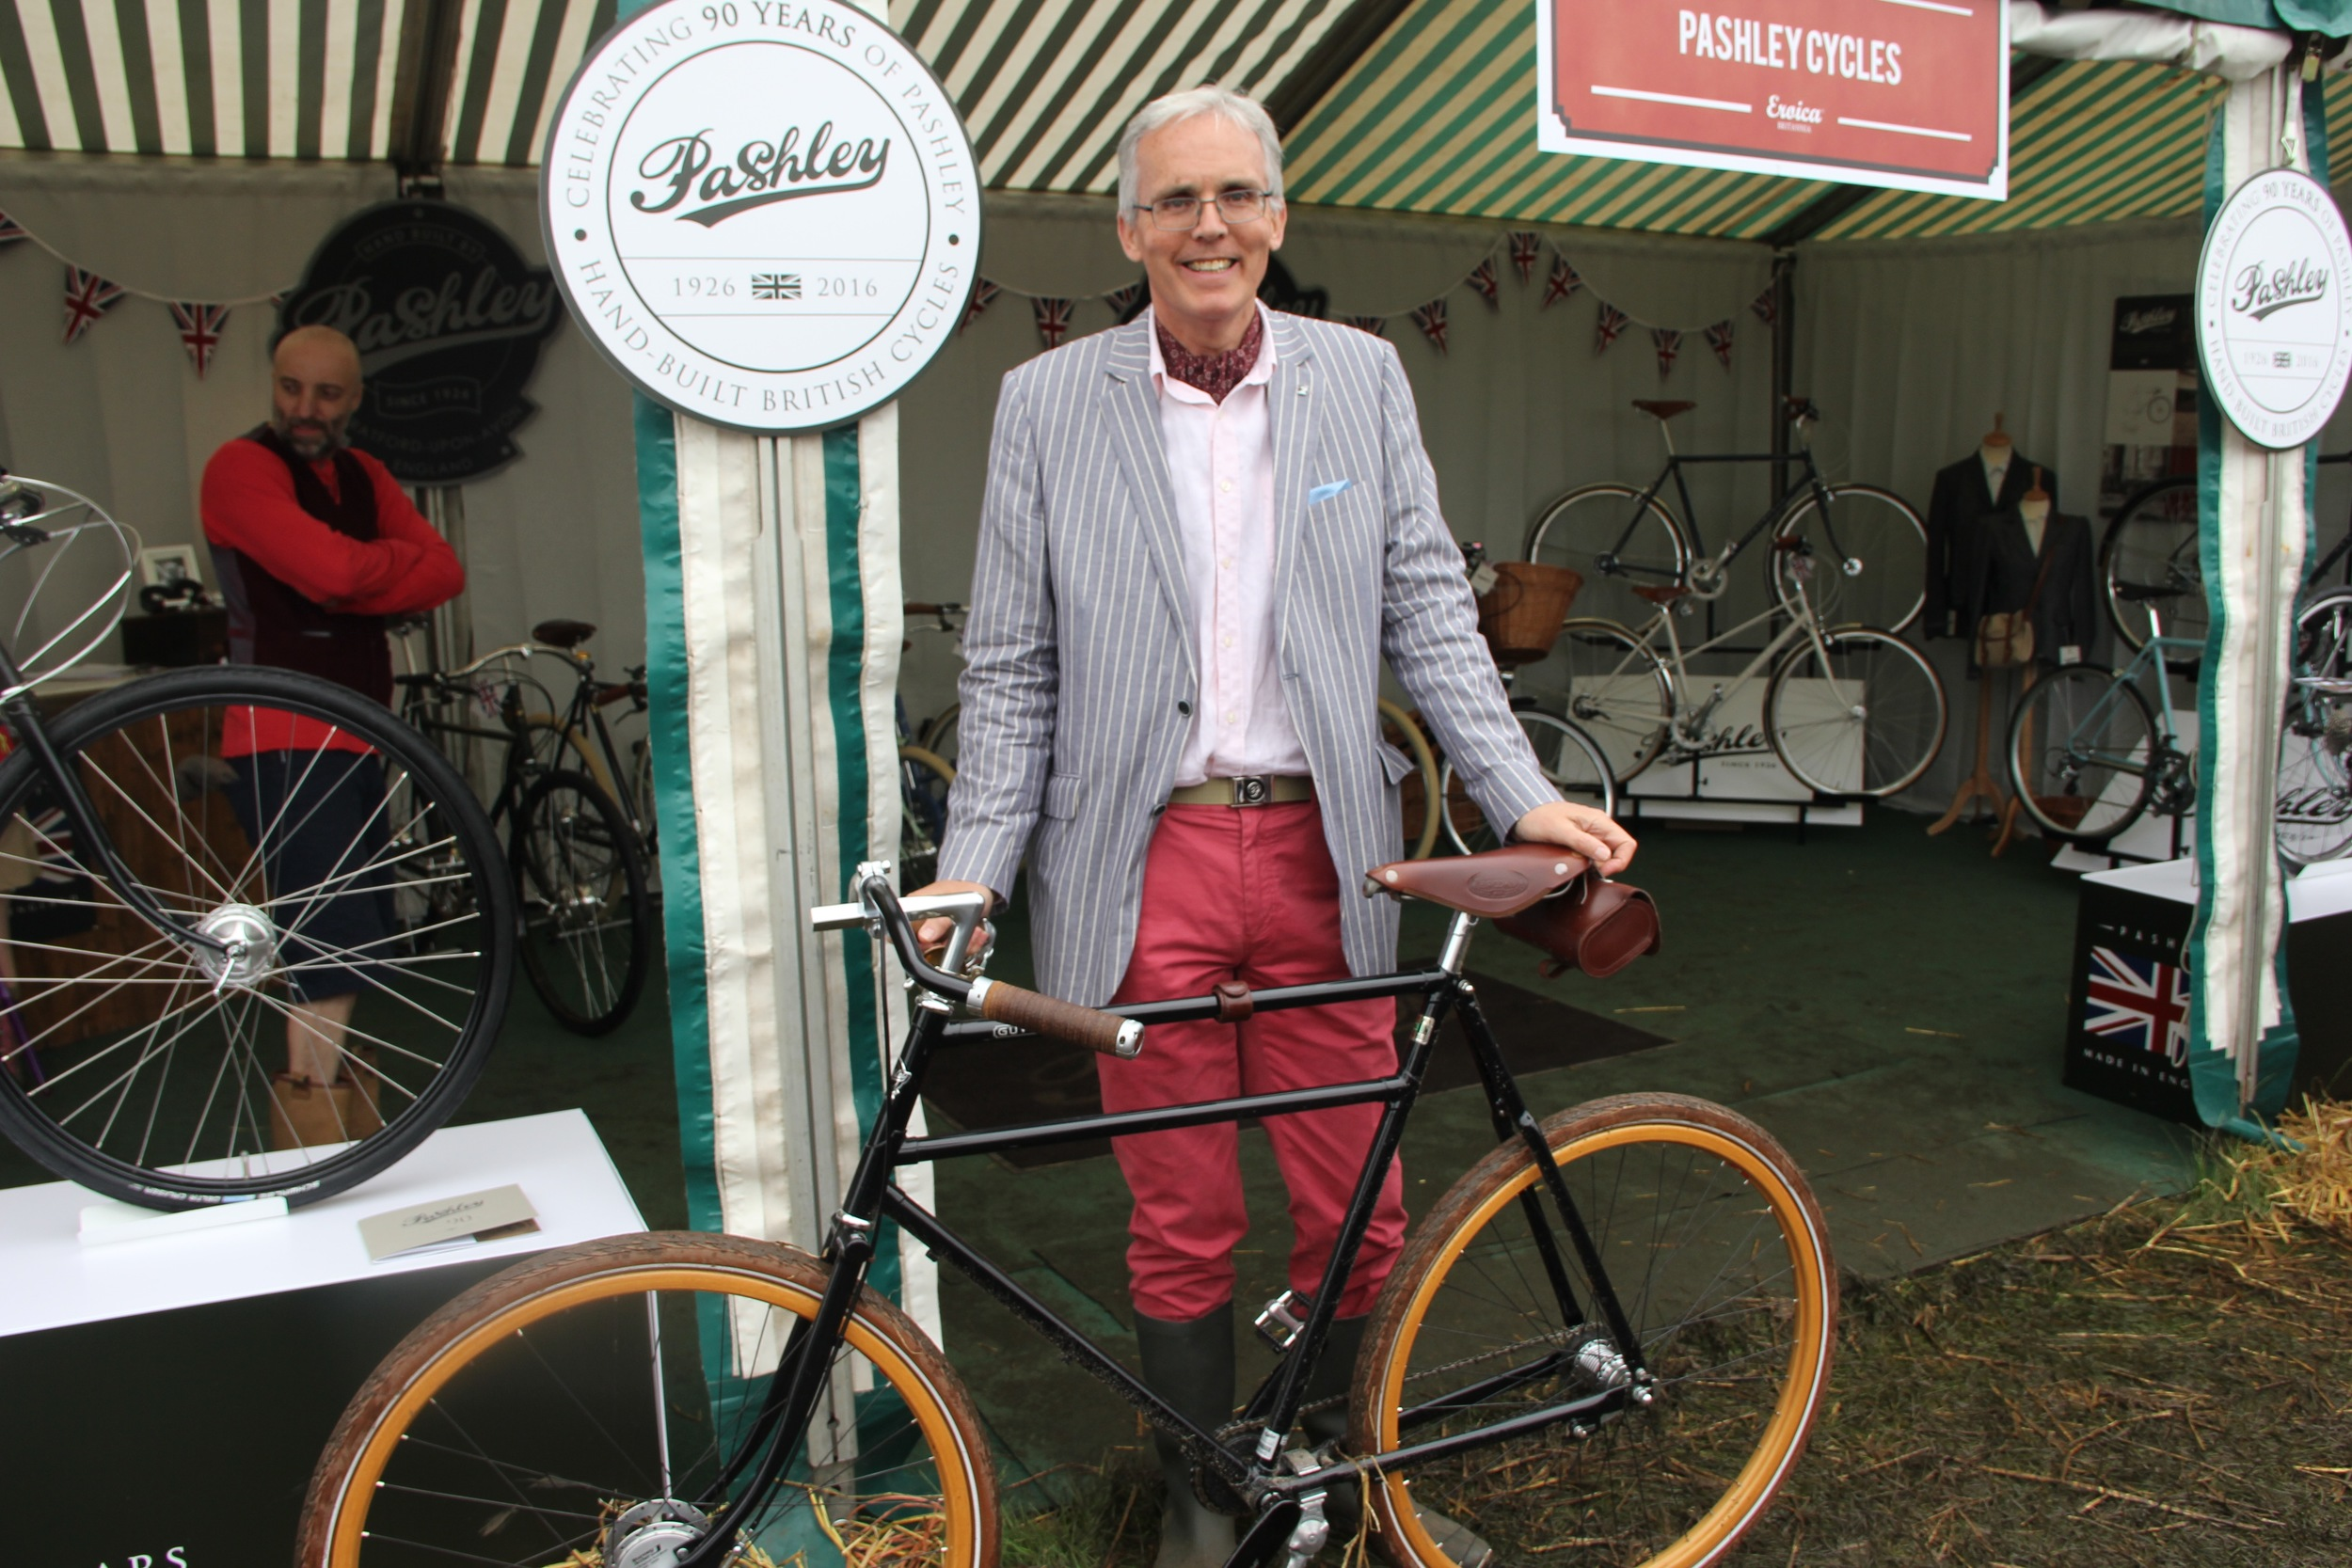 Adrian Williams MD of Pashley cycles and hero of the Guvnors' Assembly